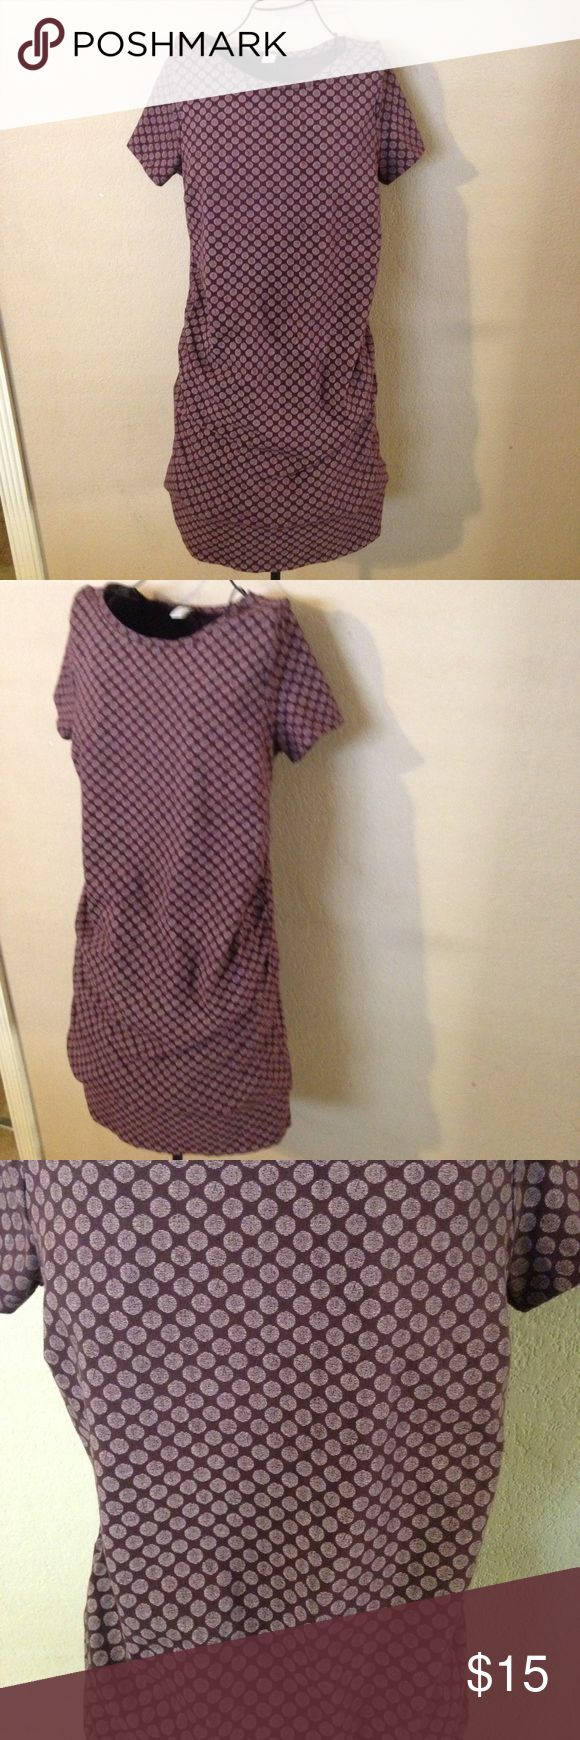 💕Cute Old Navy maternity dress size small look💕 Super cute comfy dress Old Navy Dresses Midi